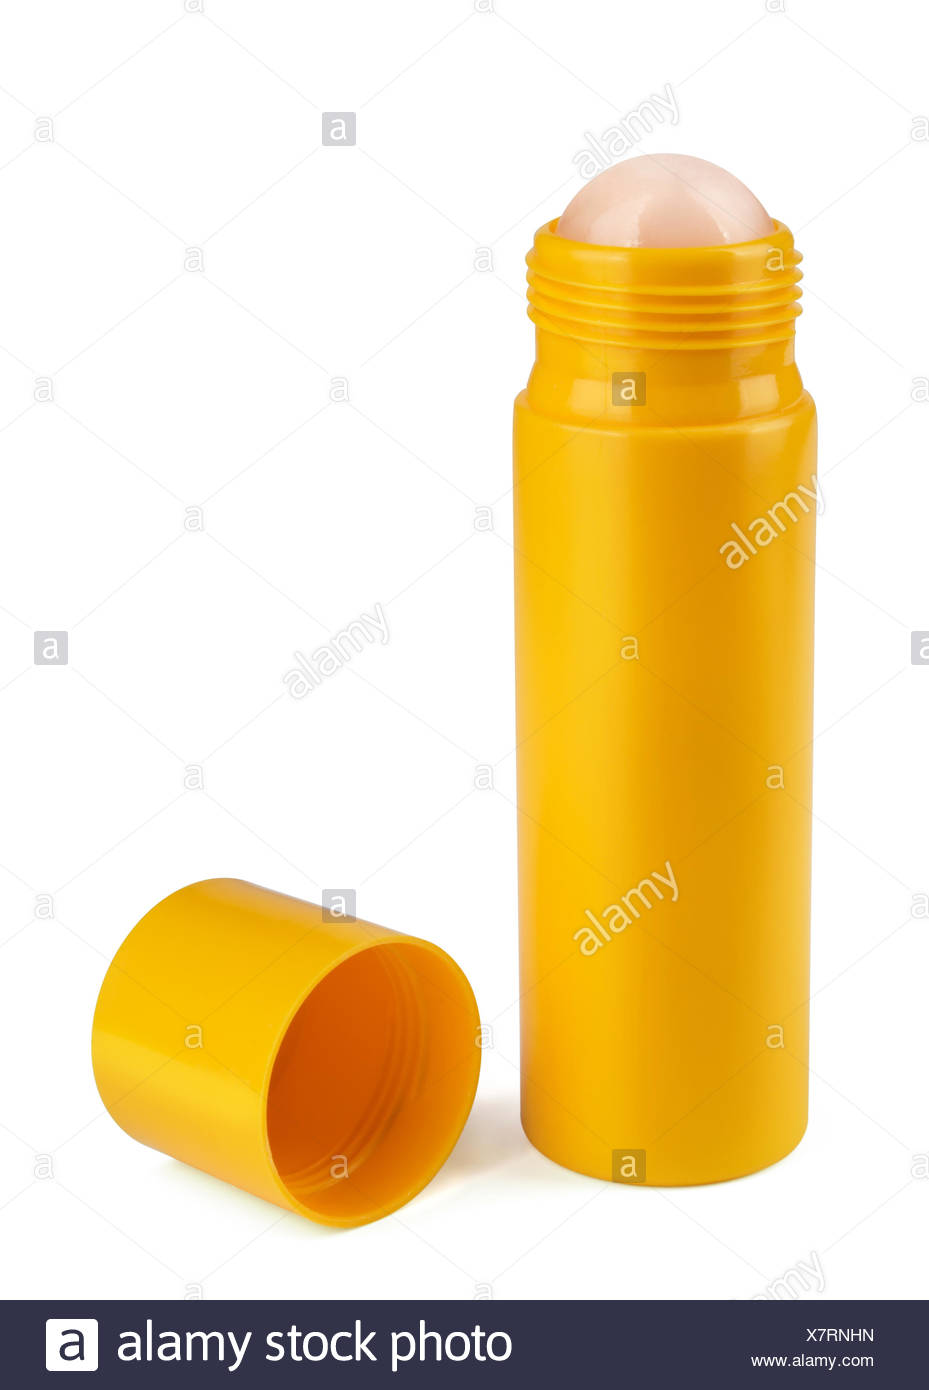 Roll-on deodorant - Stock Image